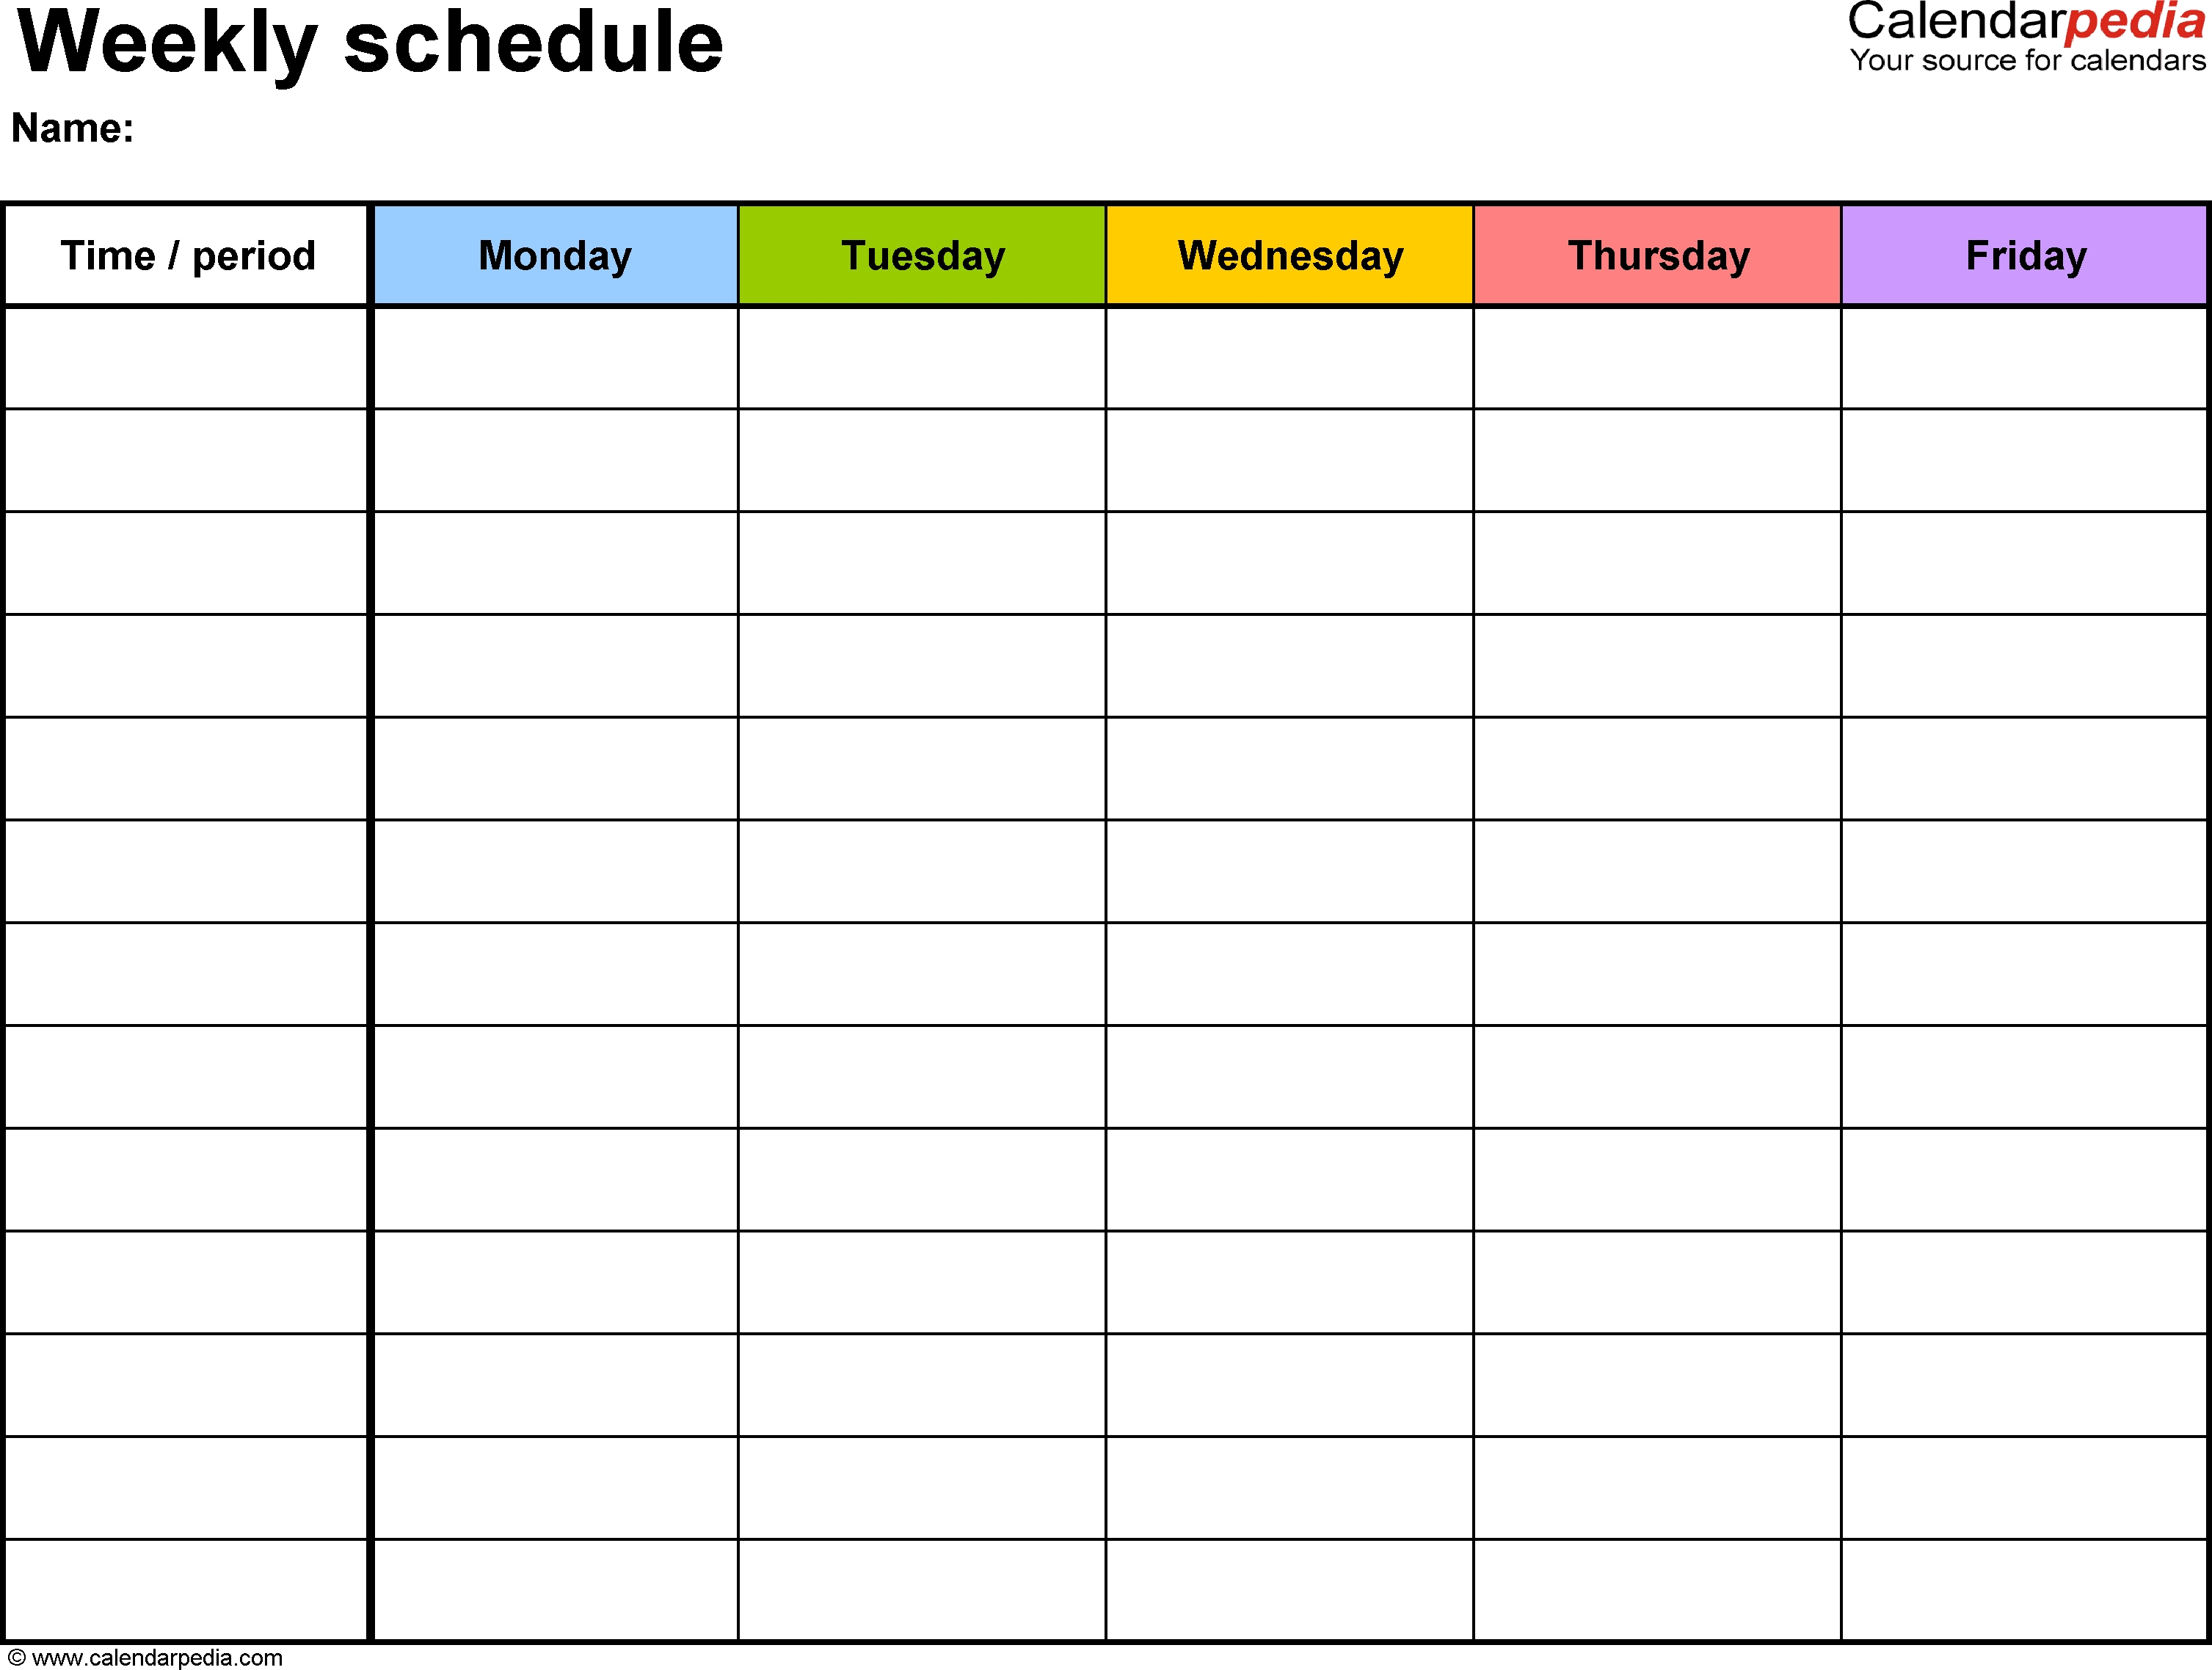 Free Weekly Schedule Templates For Word - 18 Templates inside 8 Days A Week Planner